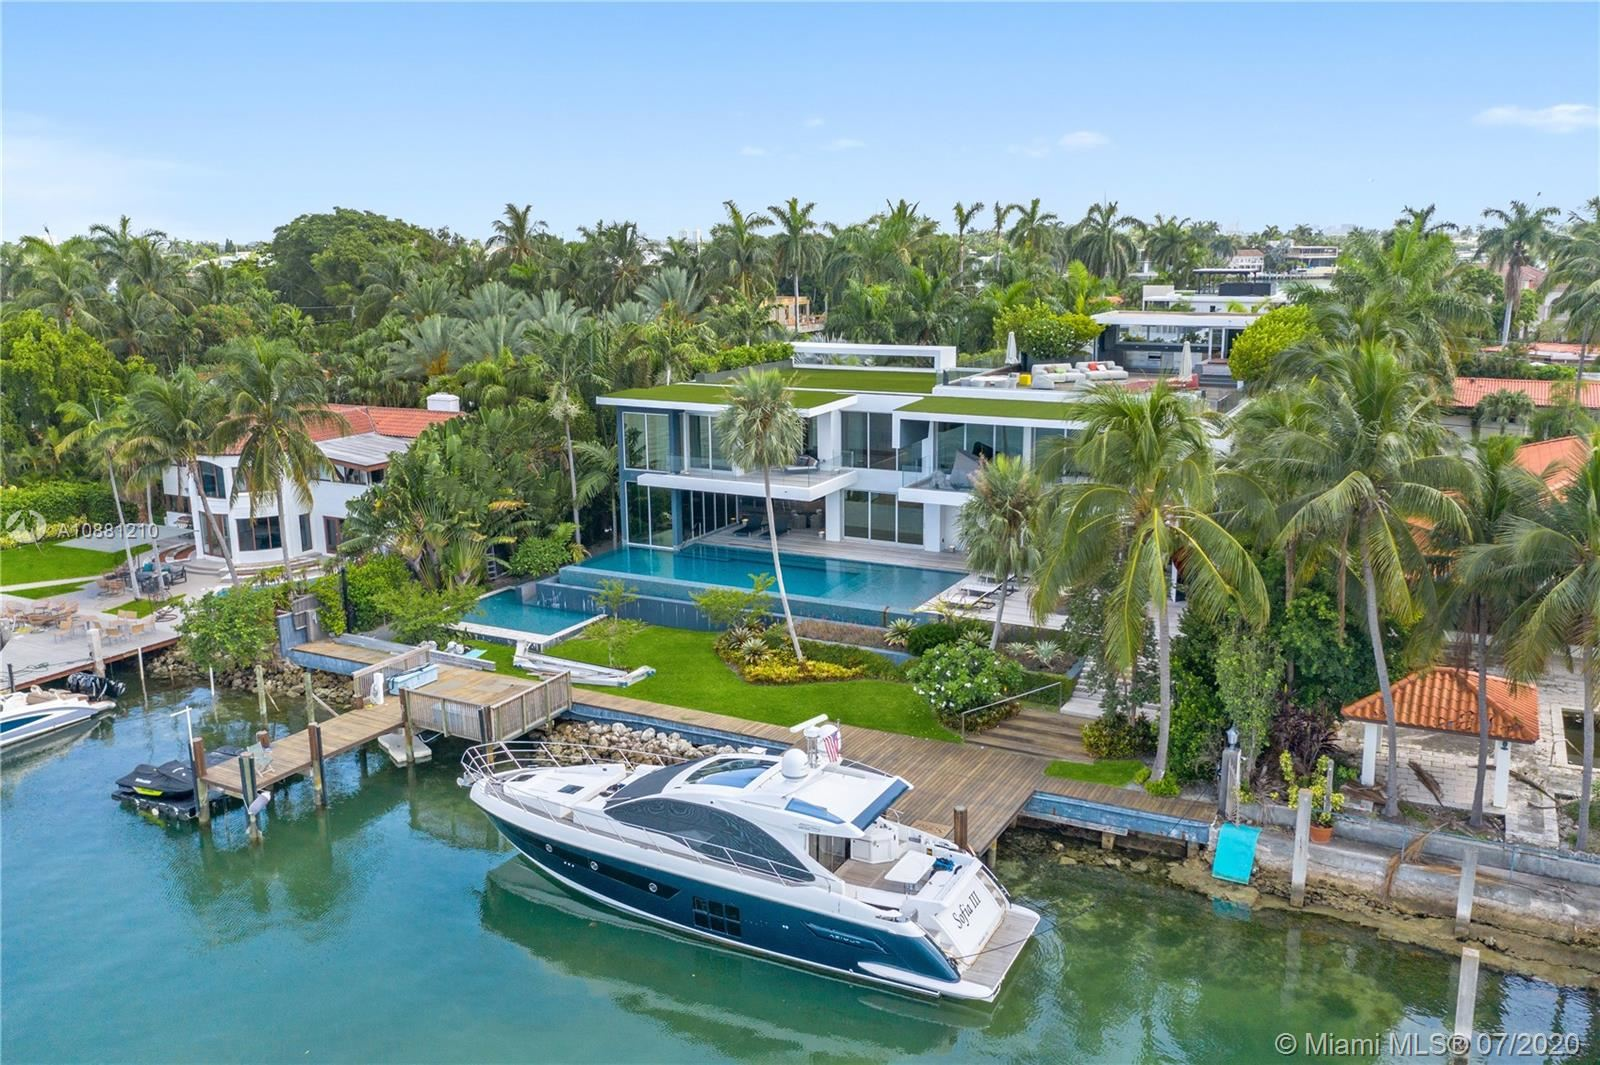 Photo 1 of Listing MLS a10881210 in 370 S Hibiscus Dr Miami Beach FL 33139